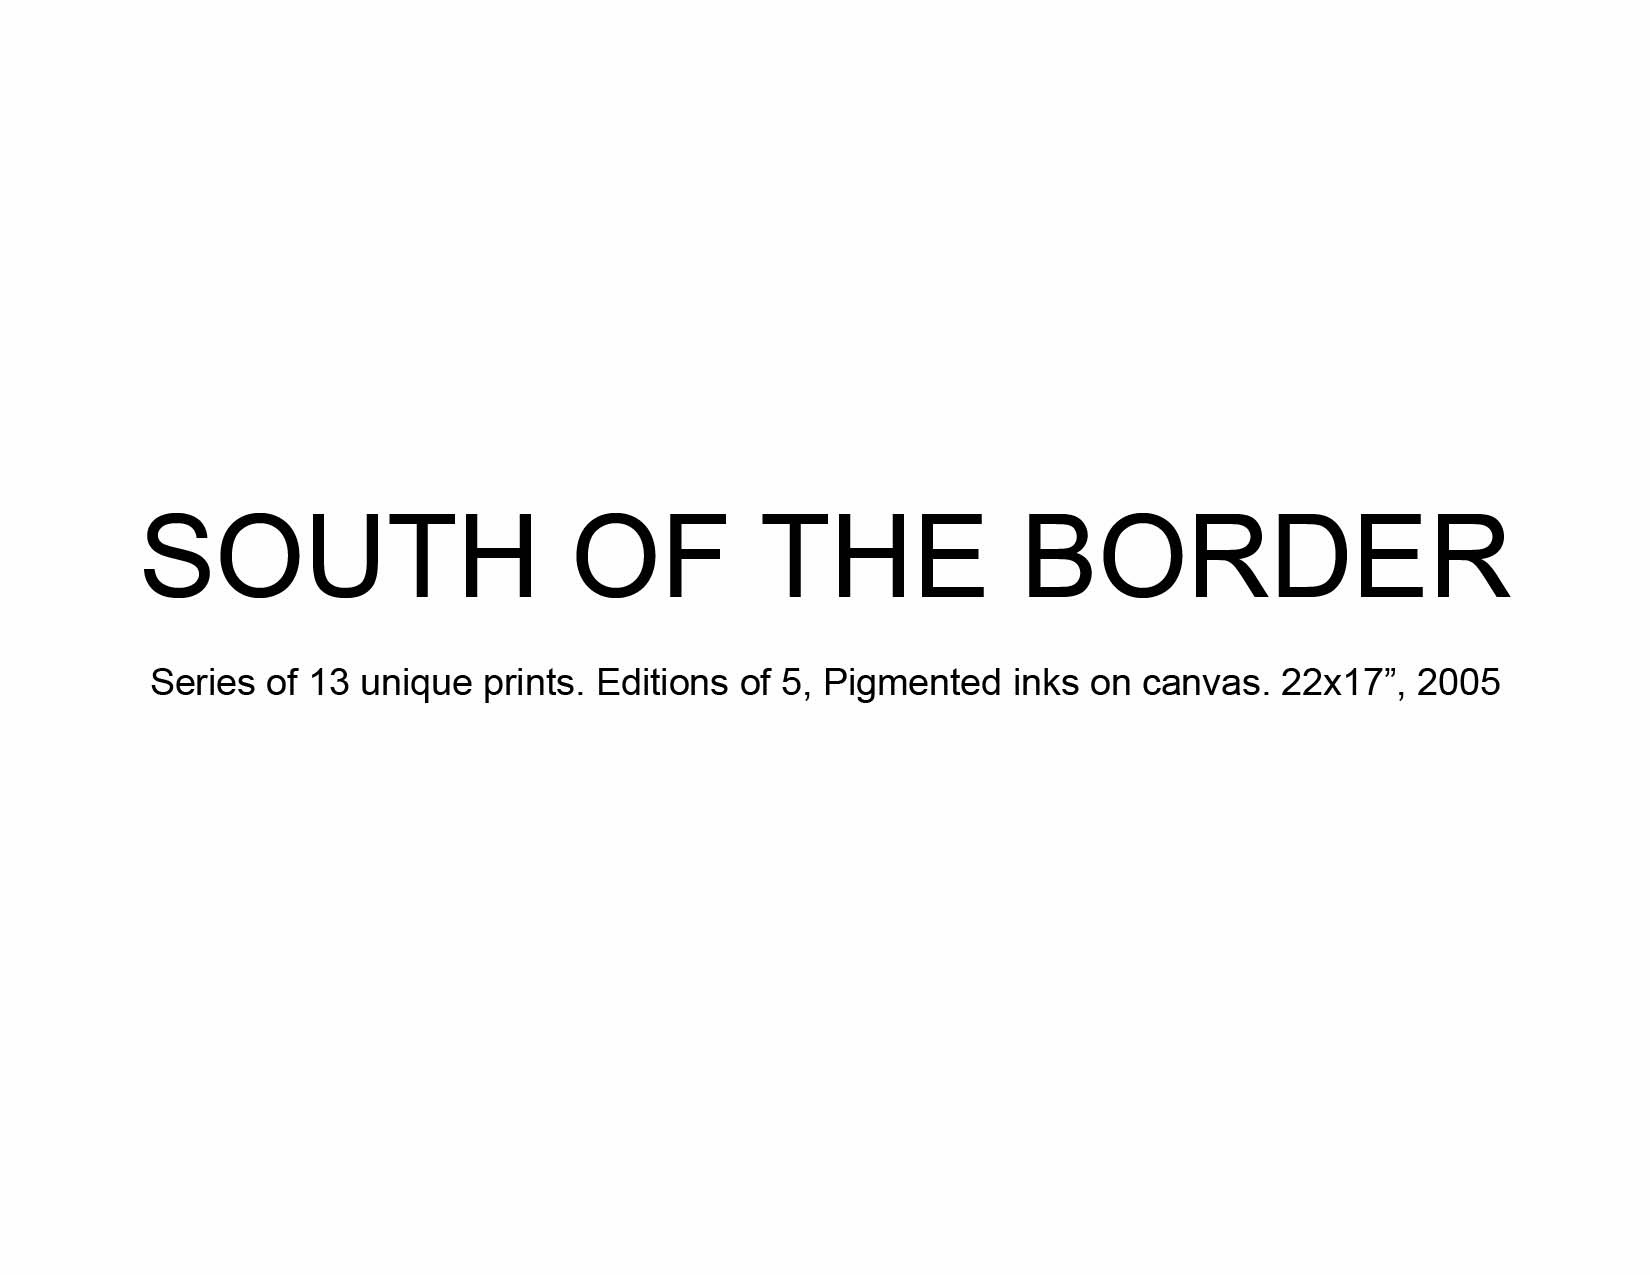 07 South of the Border.jpg